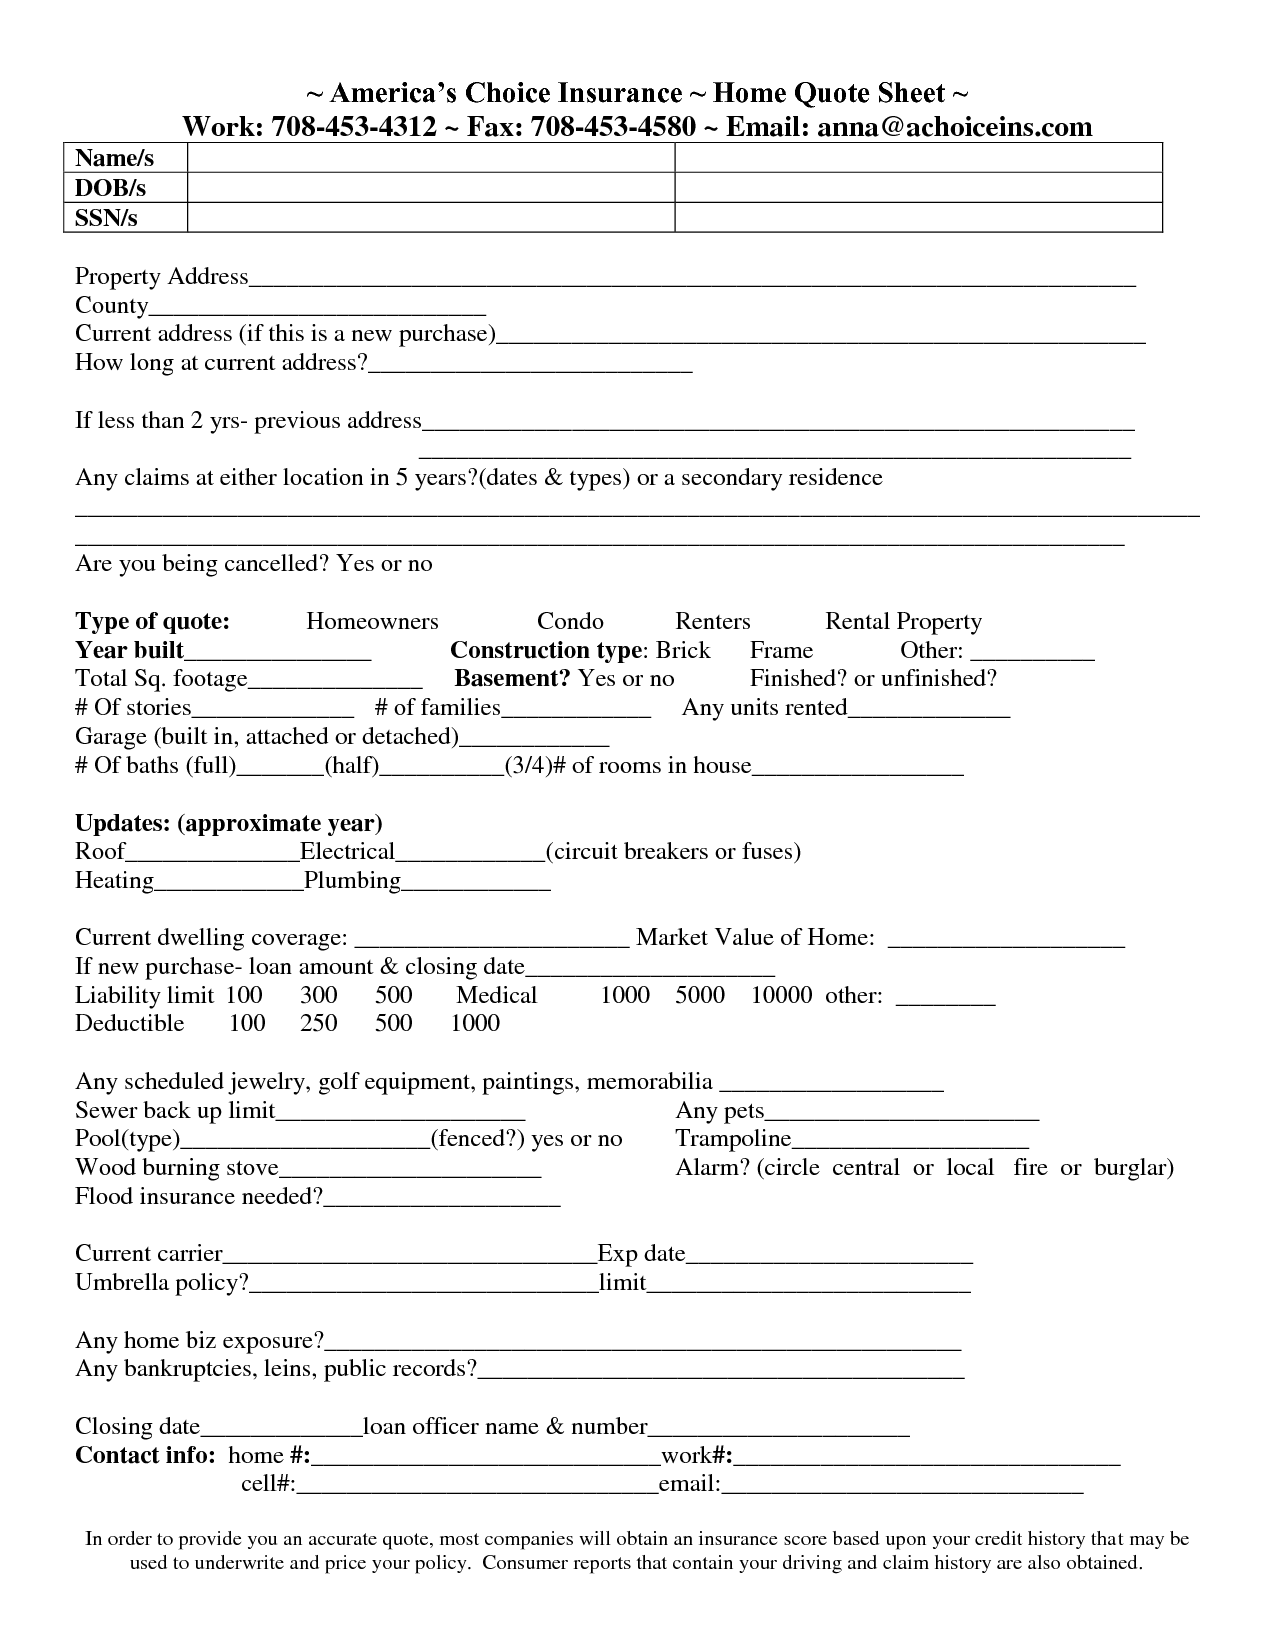 home insurance quote sheet template_3